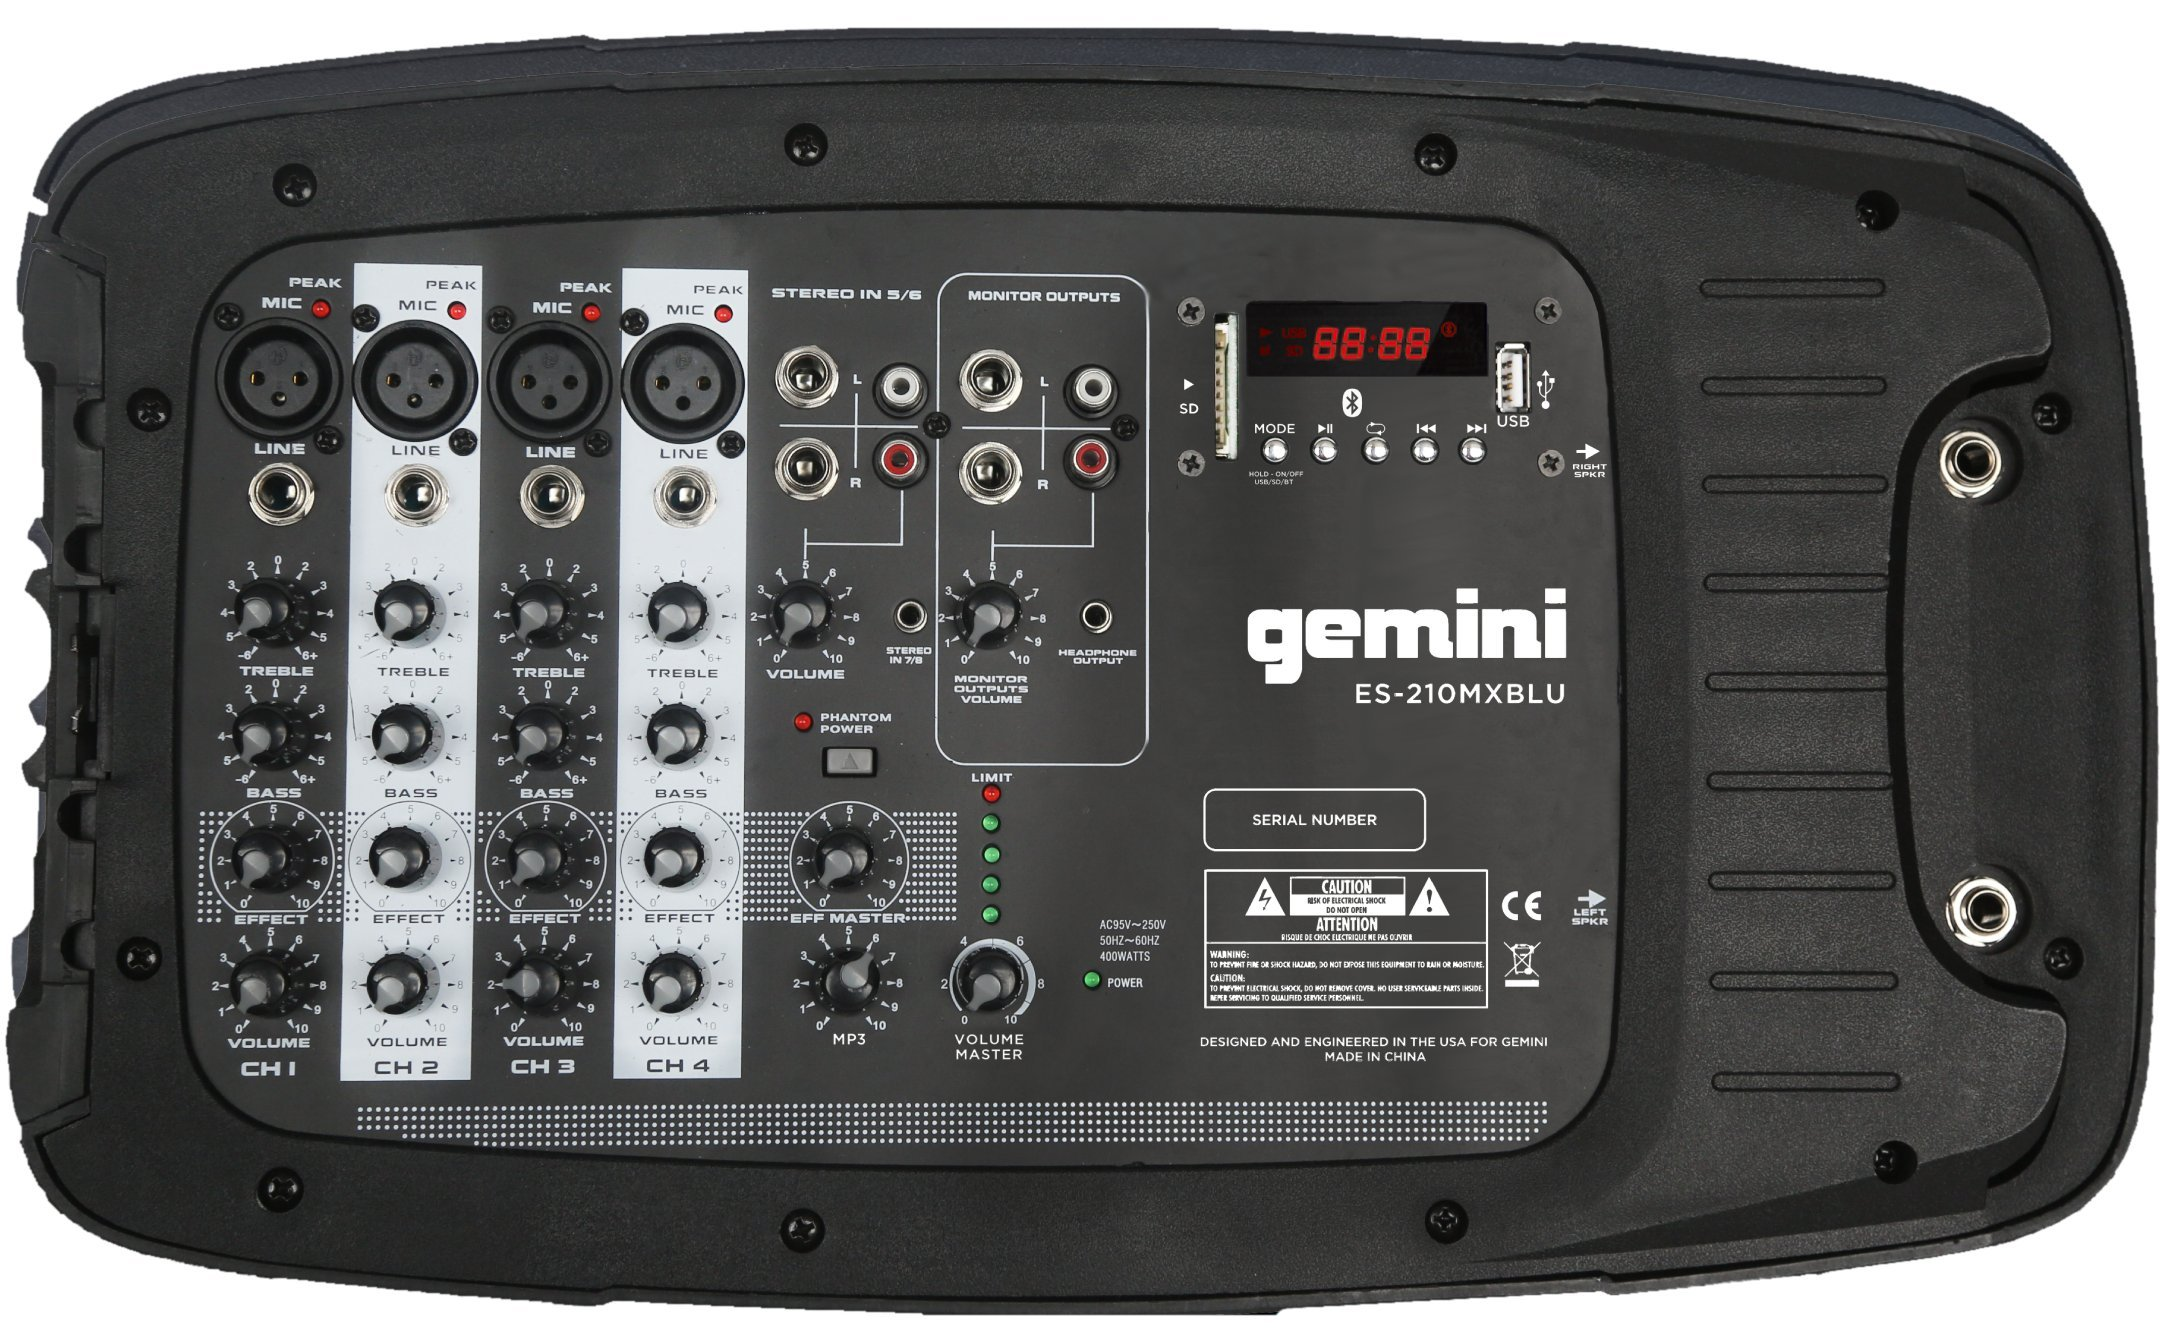 Gemini ES Series ES-210MXBLU Professional Audio Portable PA System with Two 10'' Passive Speakers and Microphone Included, 8 Channel Mixer, 4 Line/Mic Inputs by Gemini (Image #4)